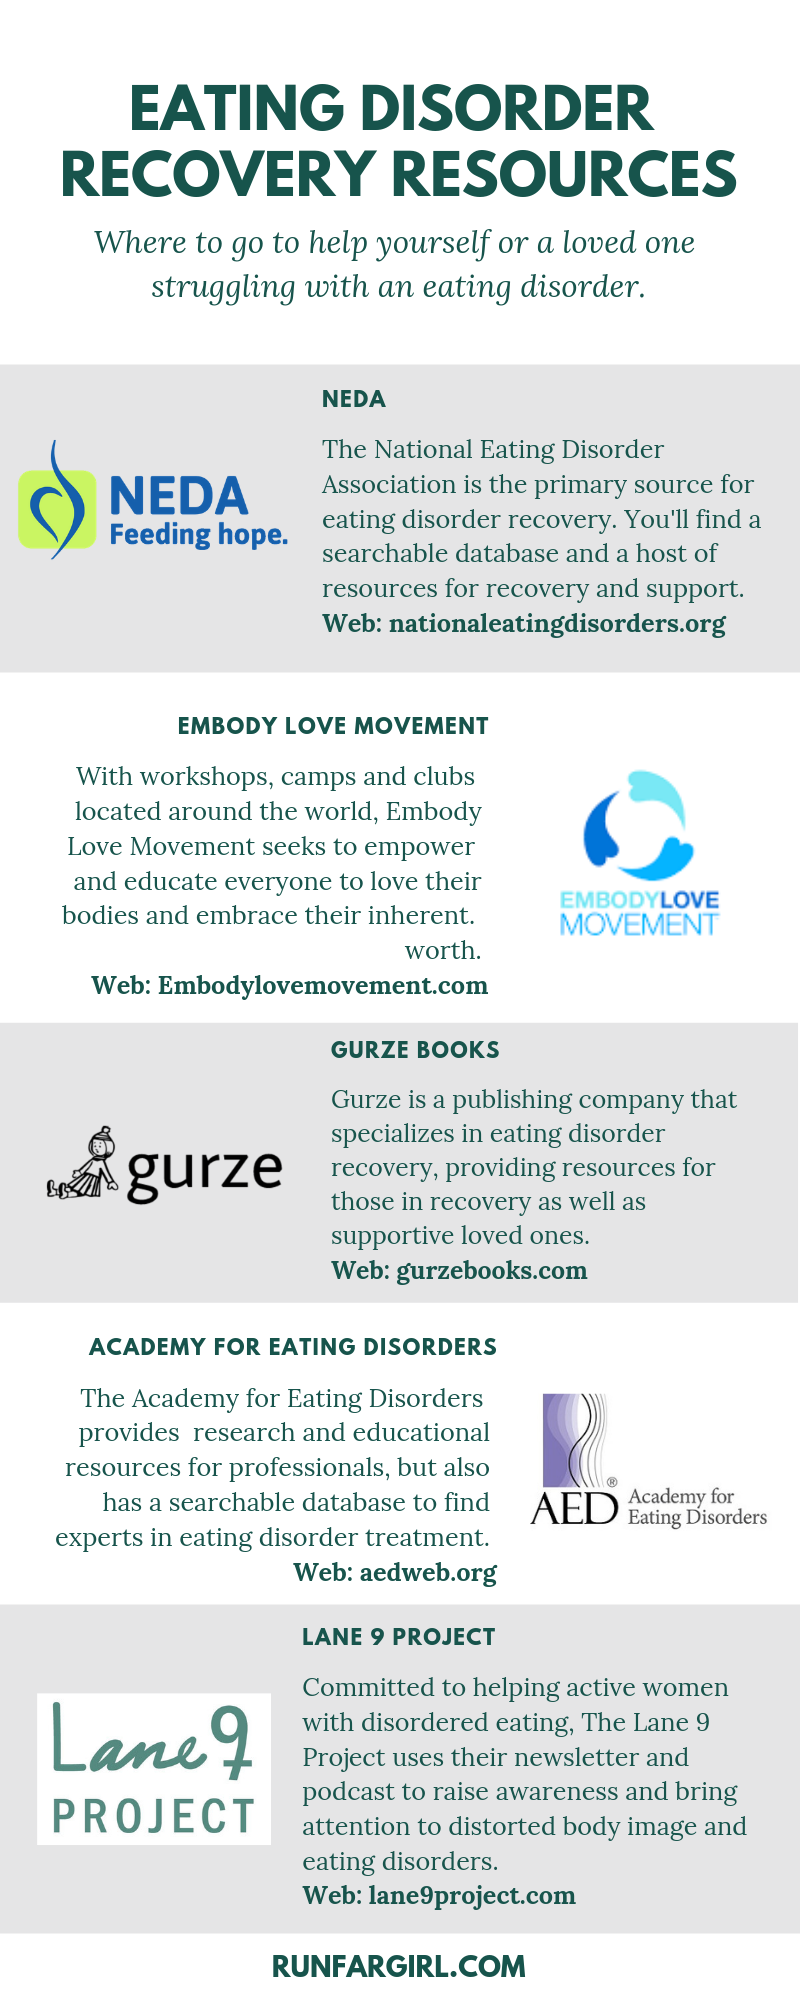 Eating Disorder Recovery and Awareness Resources